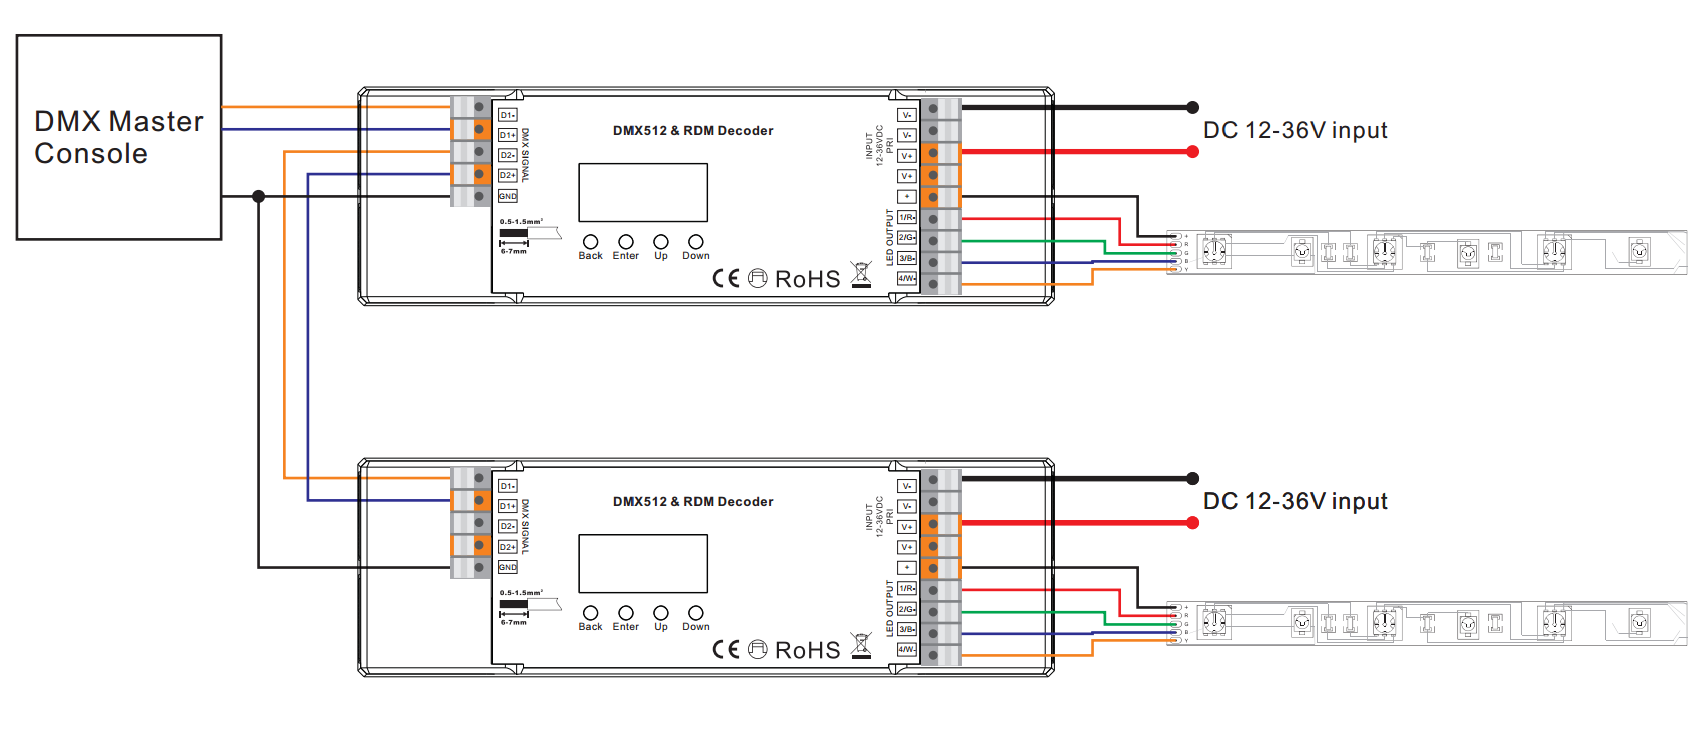 Remarkable Dmx Decoder Wiring Diagram General Wiring Diagram Data Wiring Digital Resources Dylitashwinbiharinl